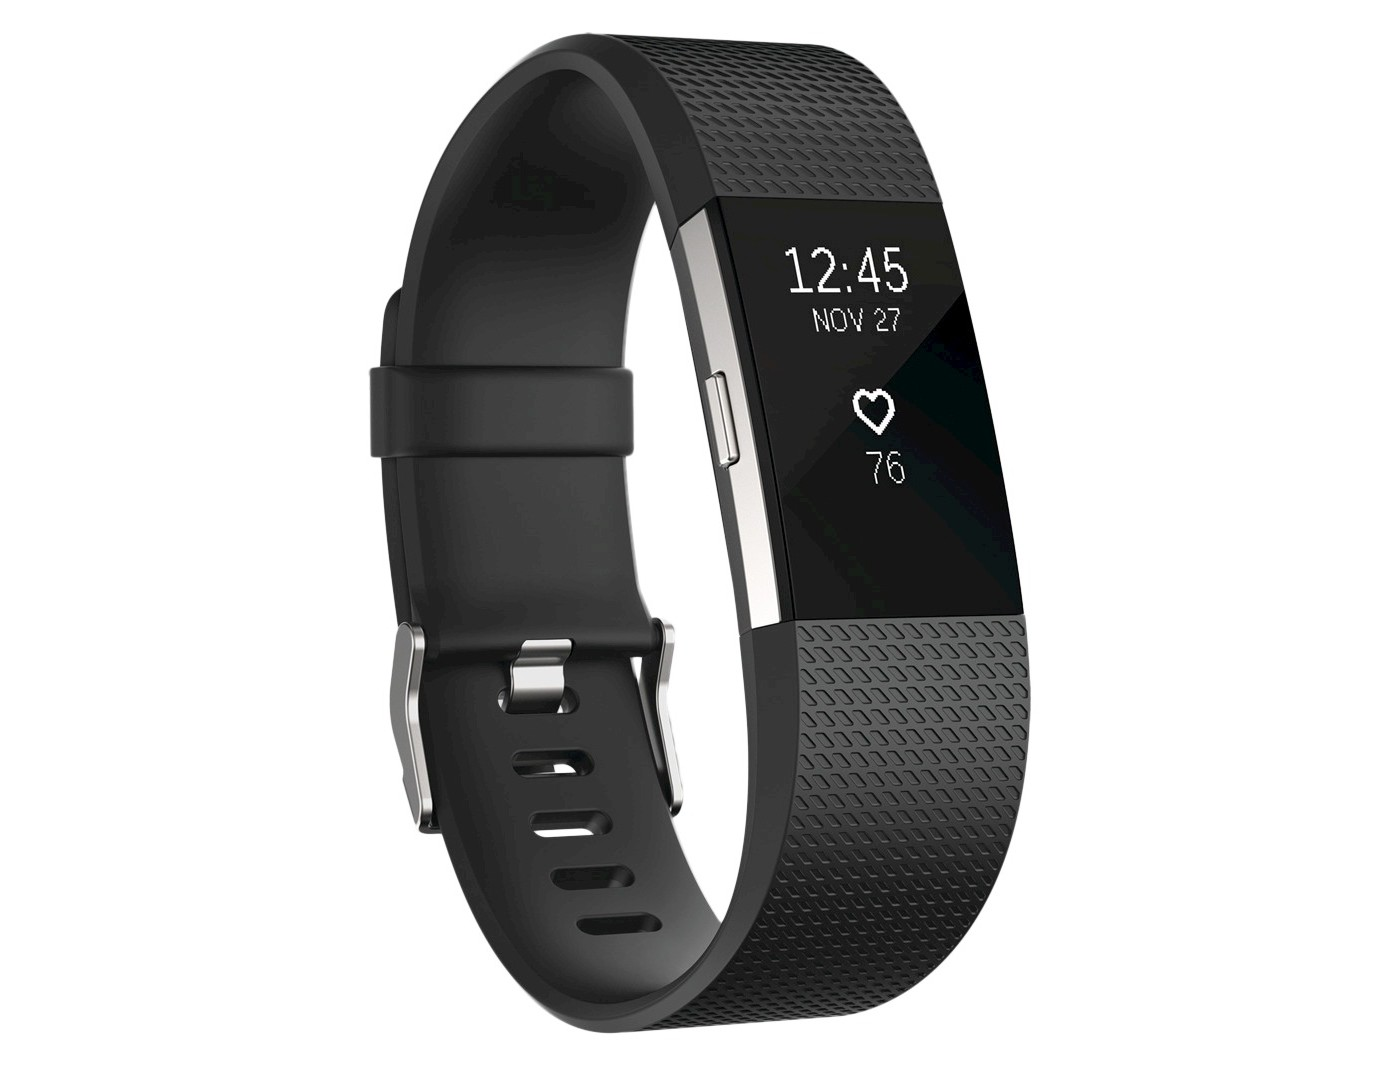 FITBIT CHARGE 2 HR ACTIVITY WRISTBAND, Black